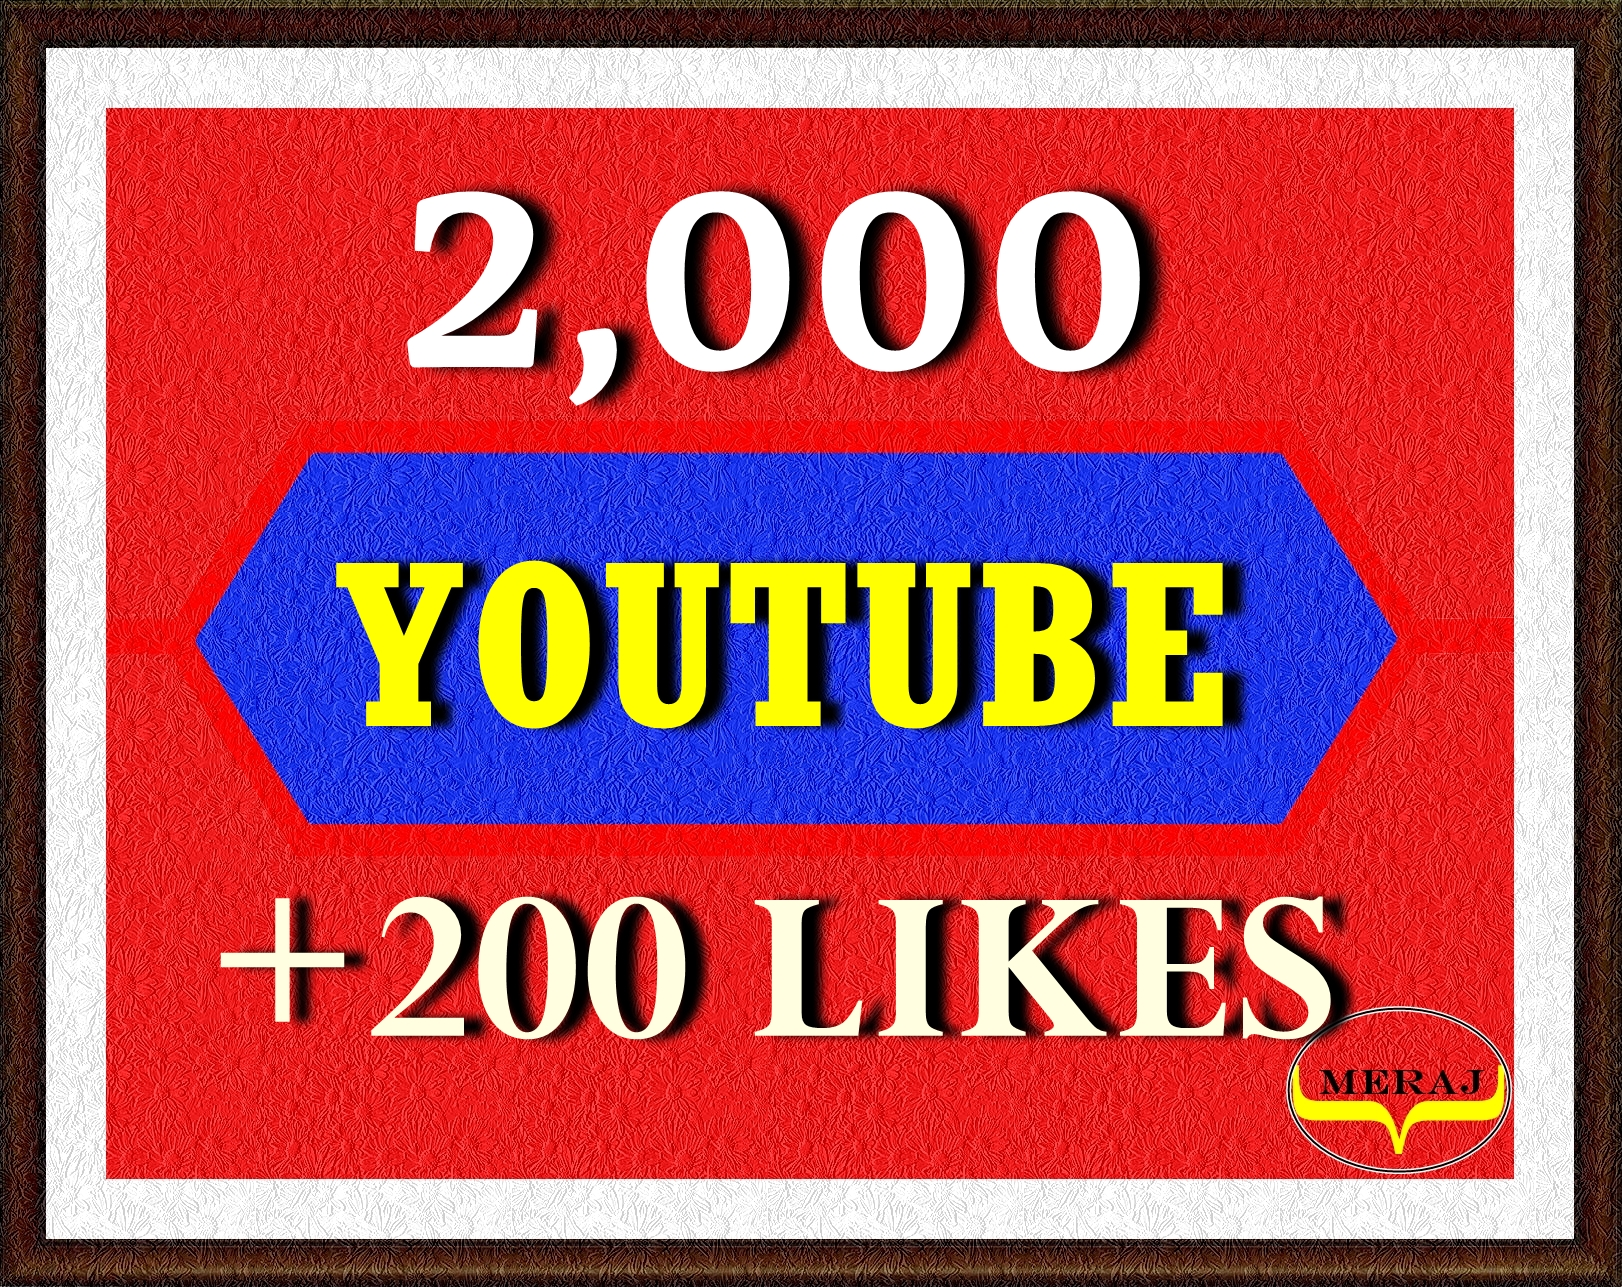 2,000 High Retention Youtube Views+ 200 Likes